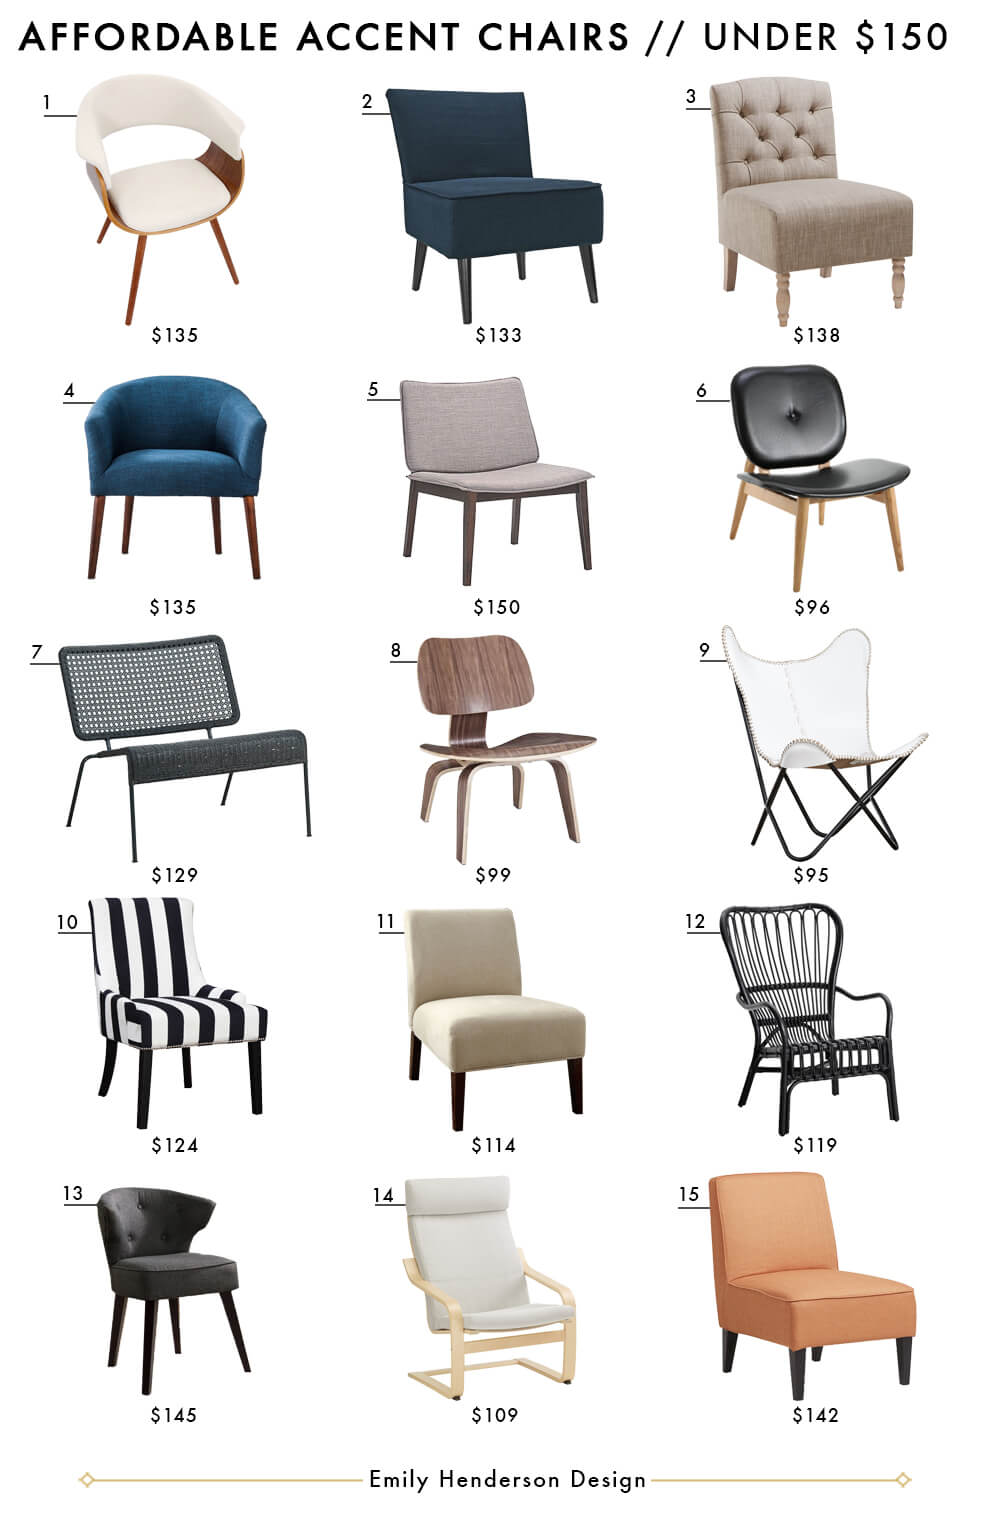 Affordable Accent Chair Roundup.